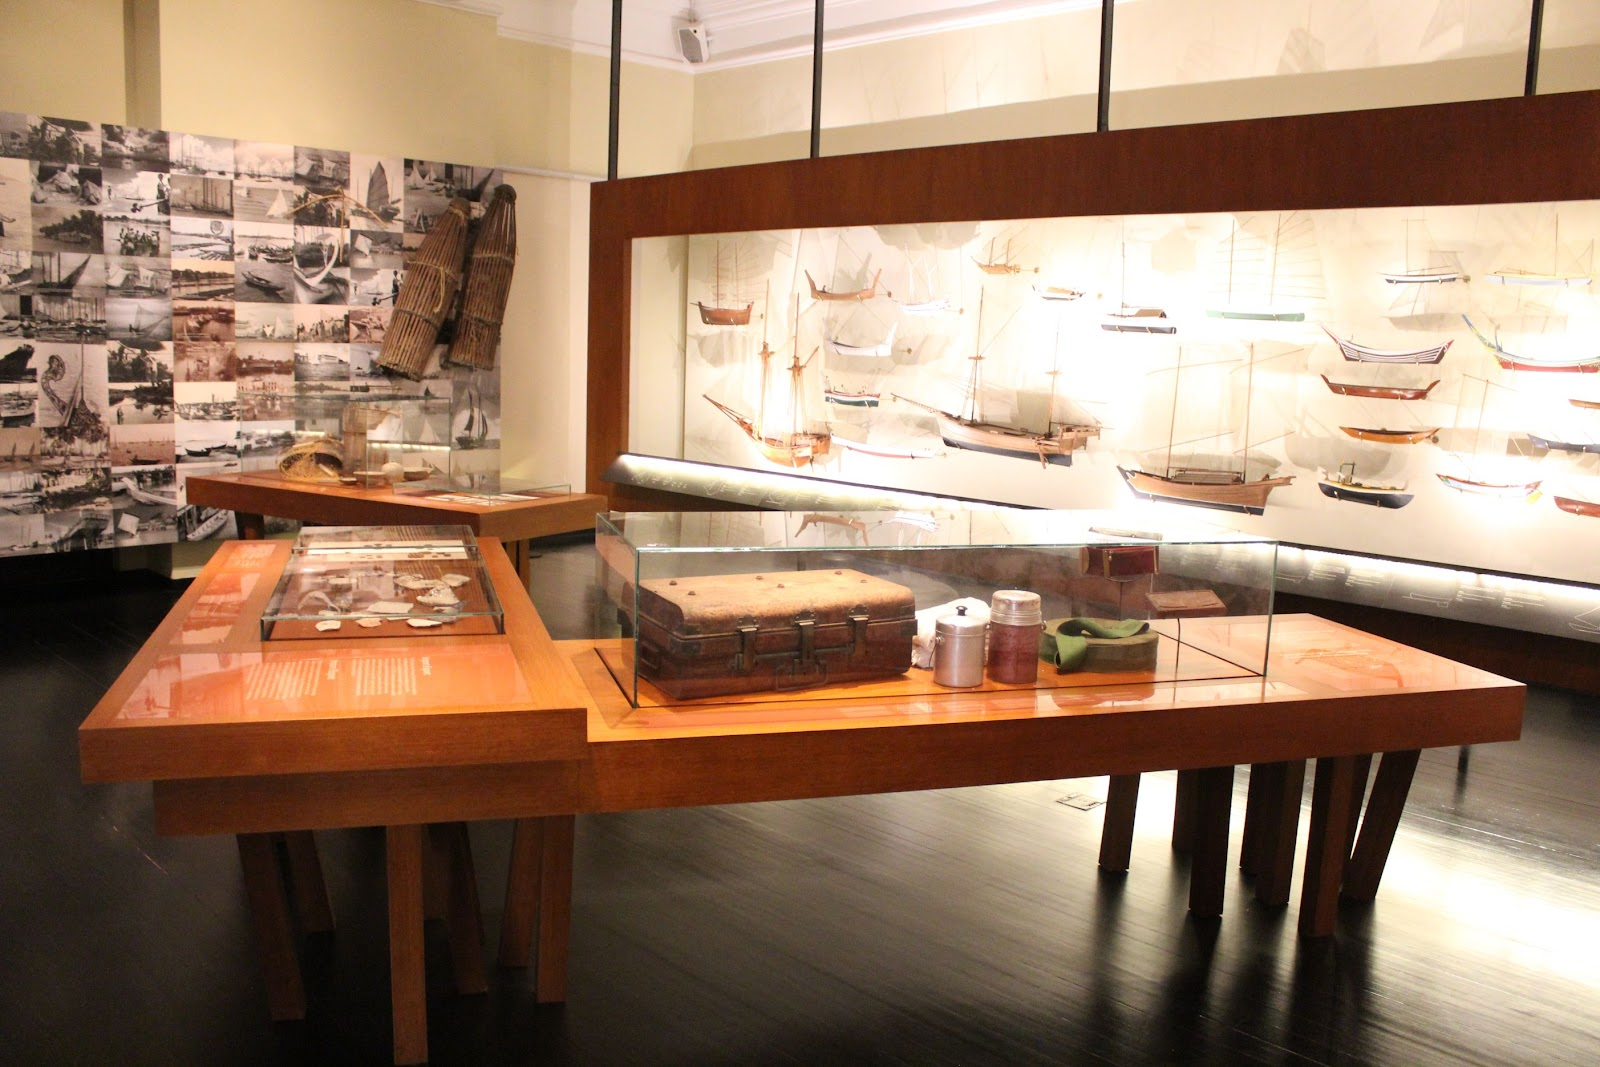 Displays of model ships and trade-based items